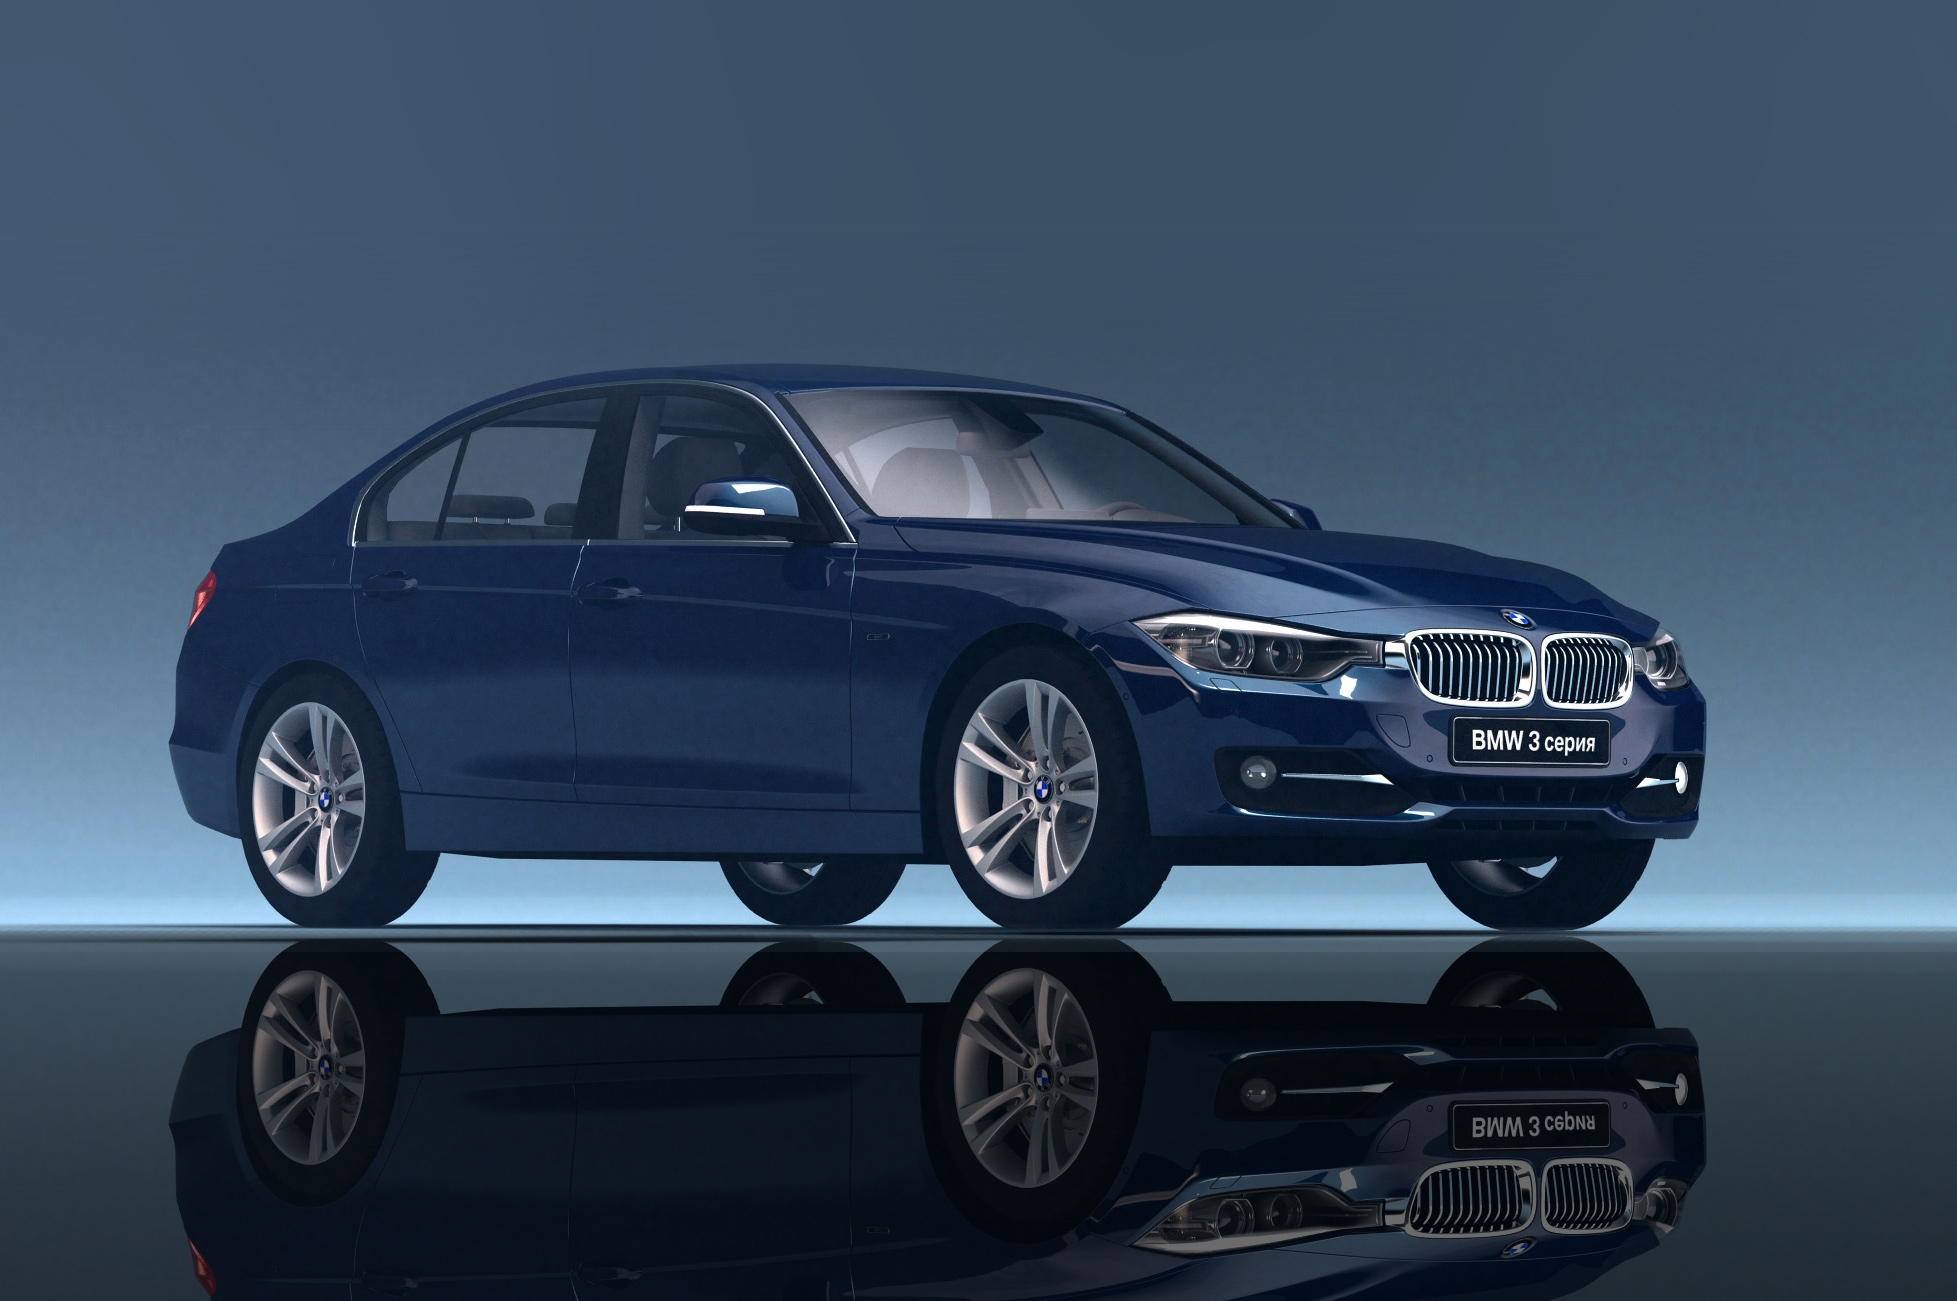 3D render from a piece created for BMW to present the new 5 series model.